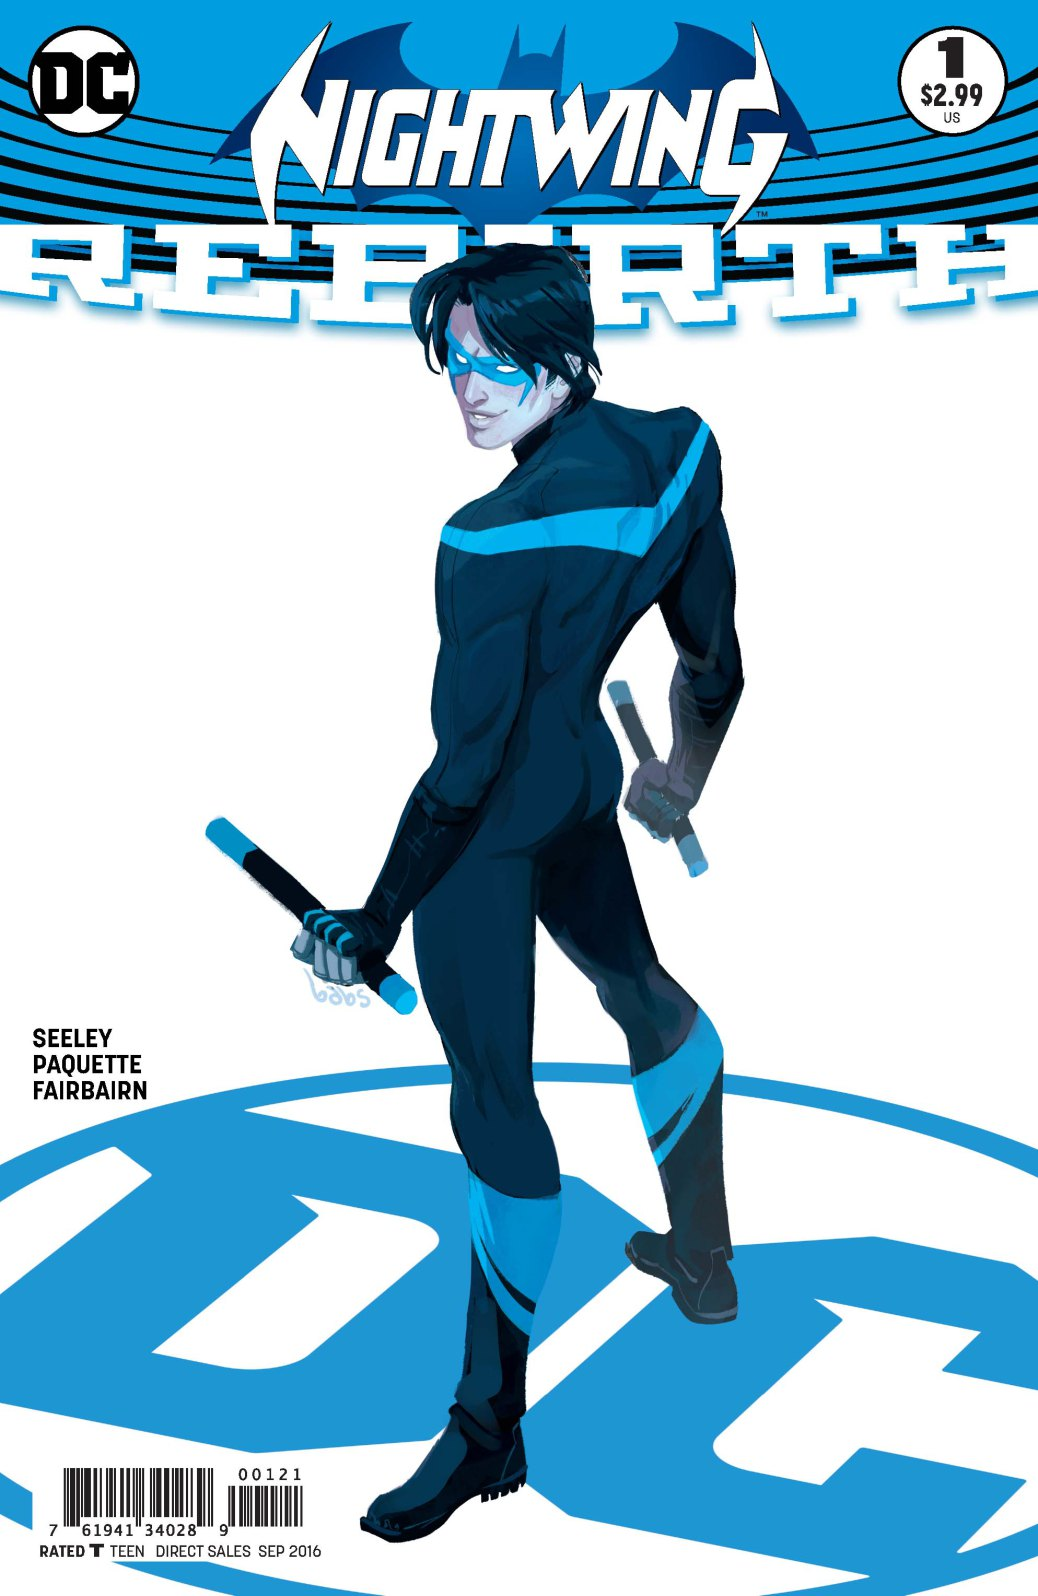 Nightwing-Rebirth-1-spoilers-preview-dc-2